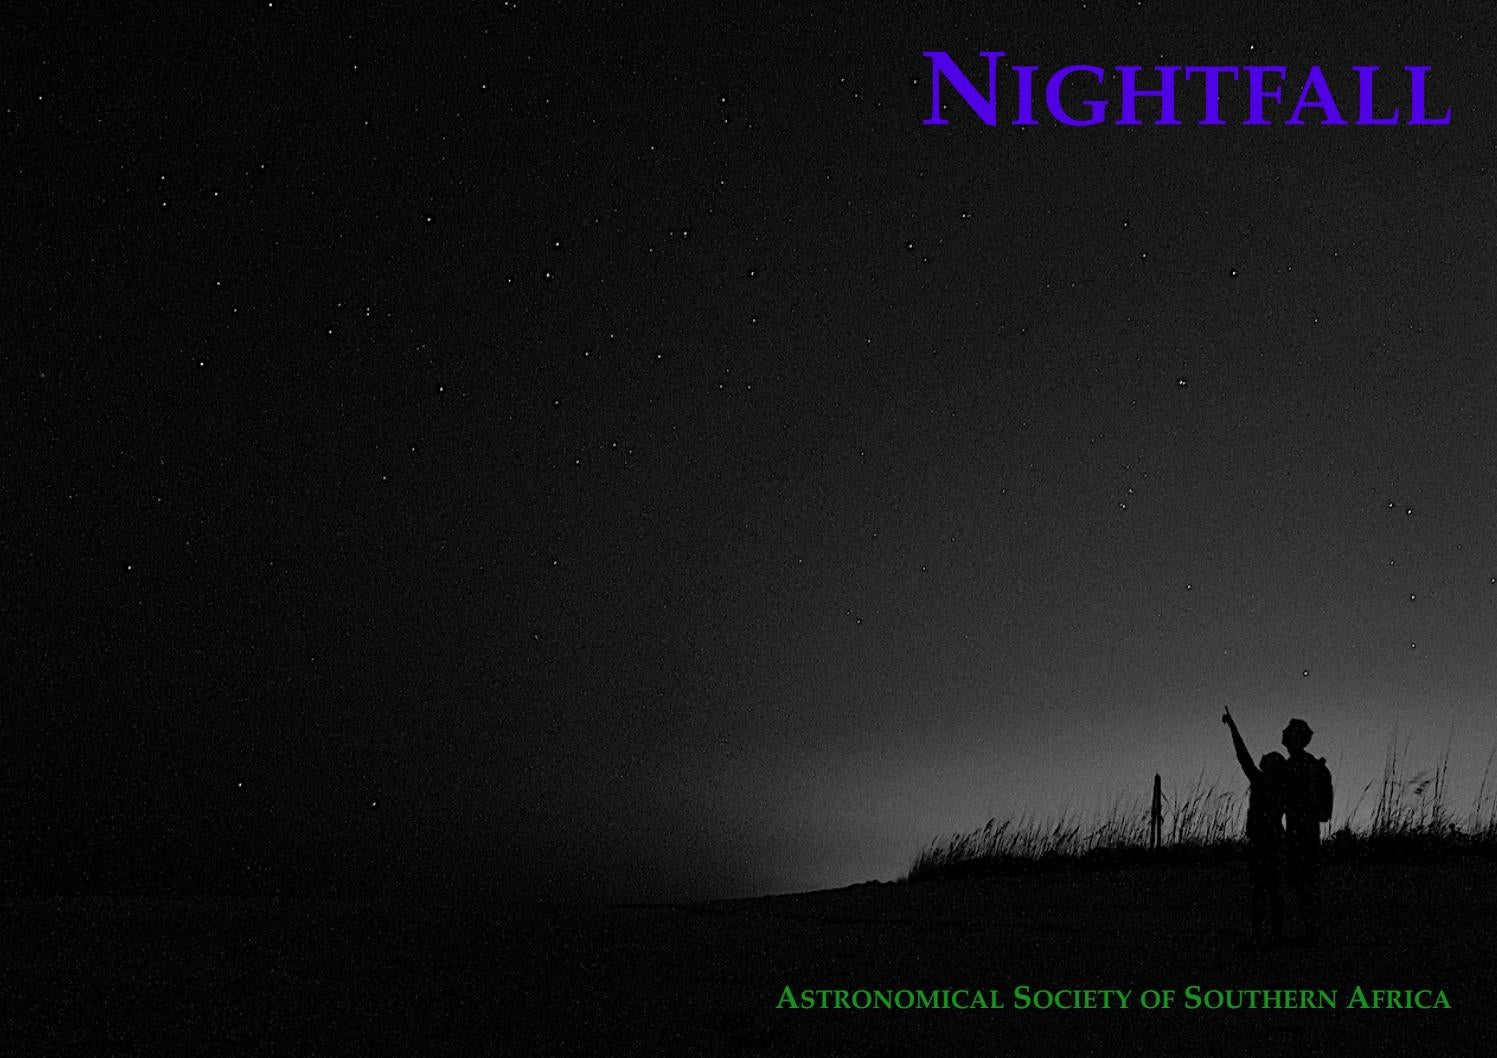 Nightfall Deep Sky Journal Of The Astronomical Society Of Southern Africa Vol 4 2 Oct 2020 By Douglas Bullis Issuu